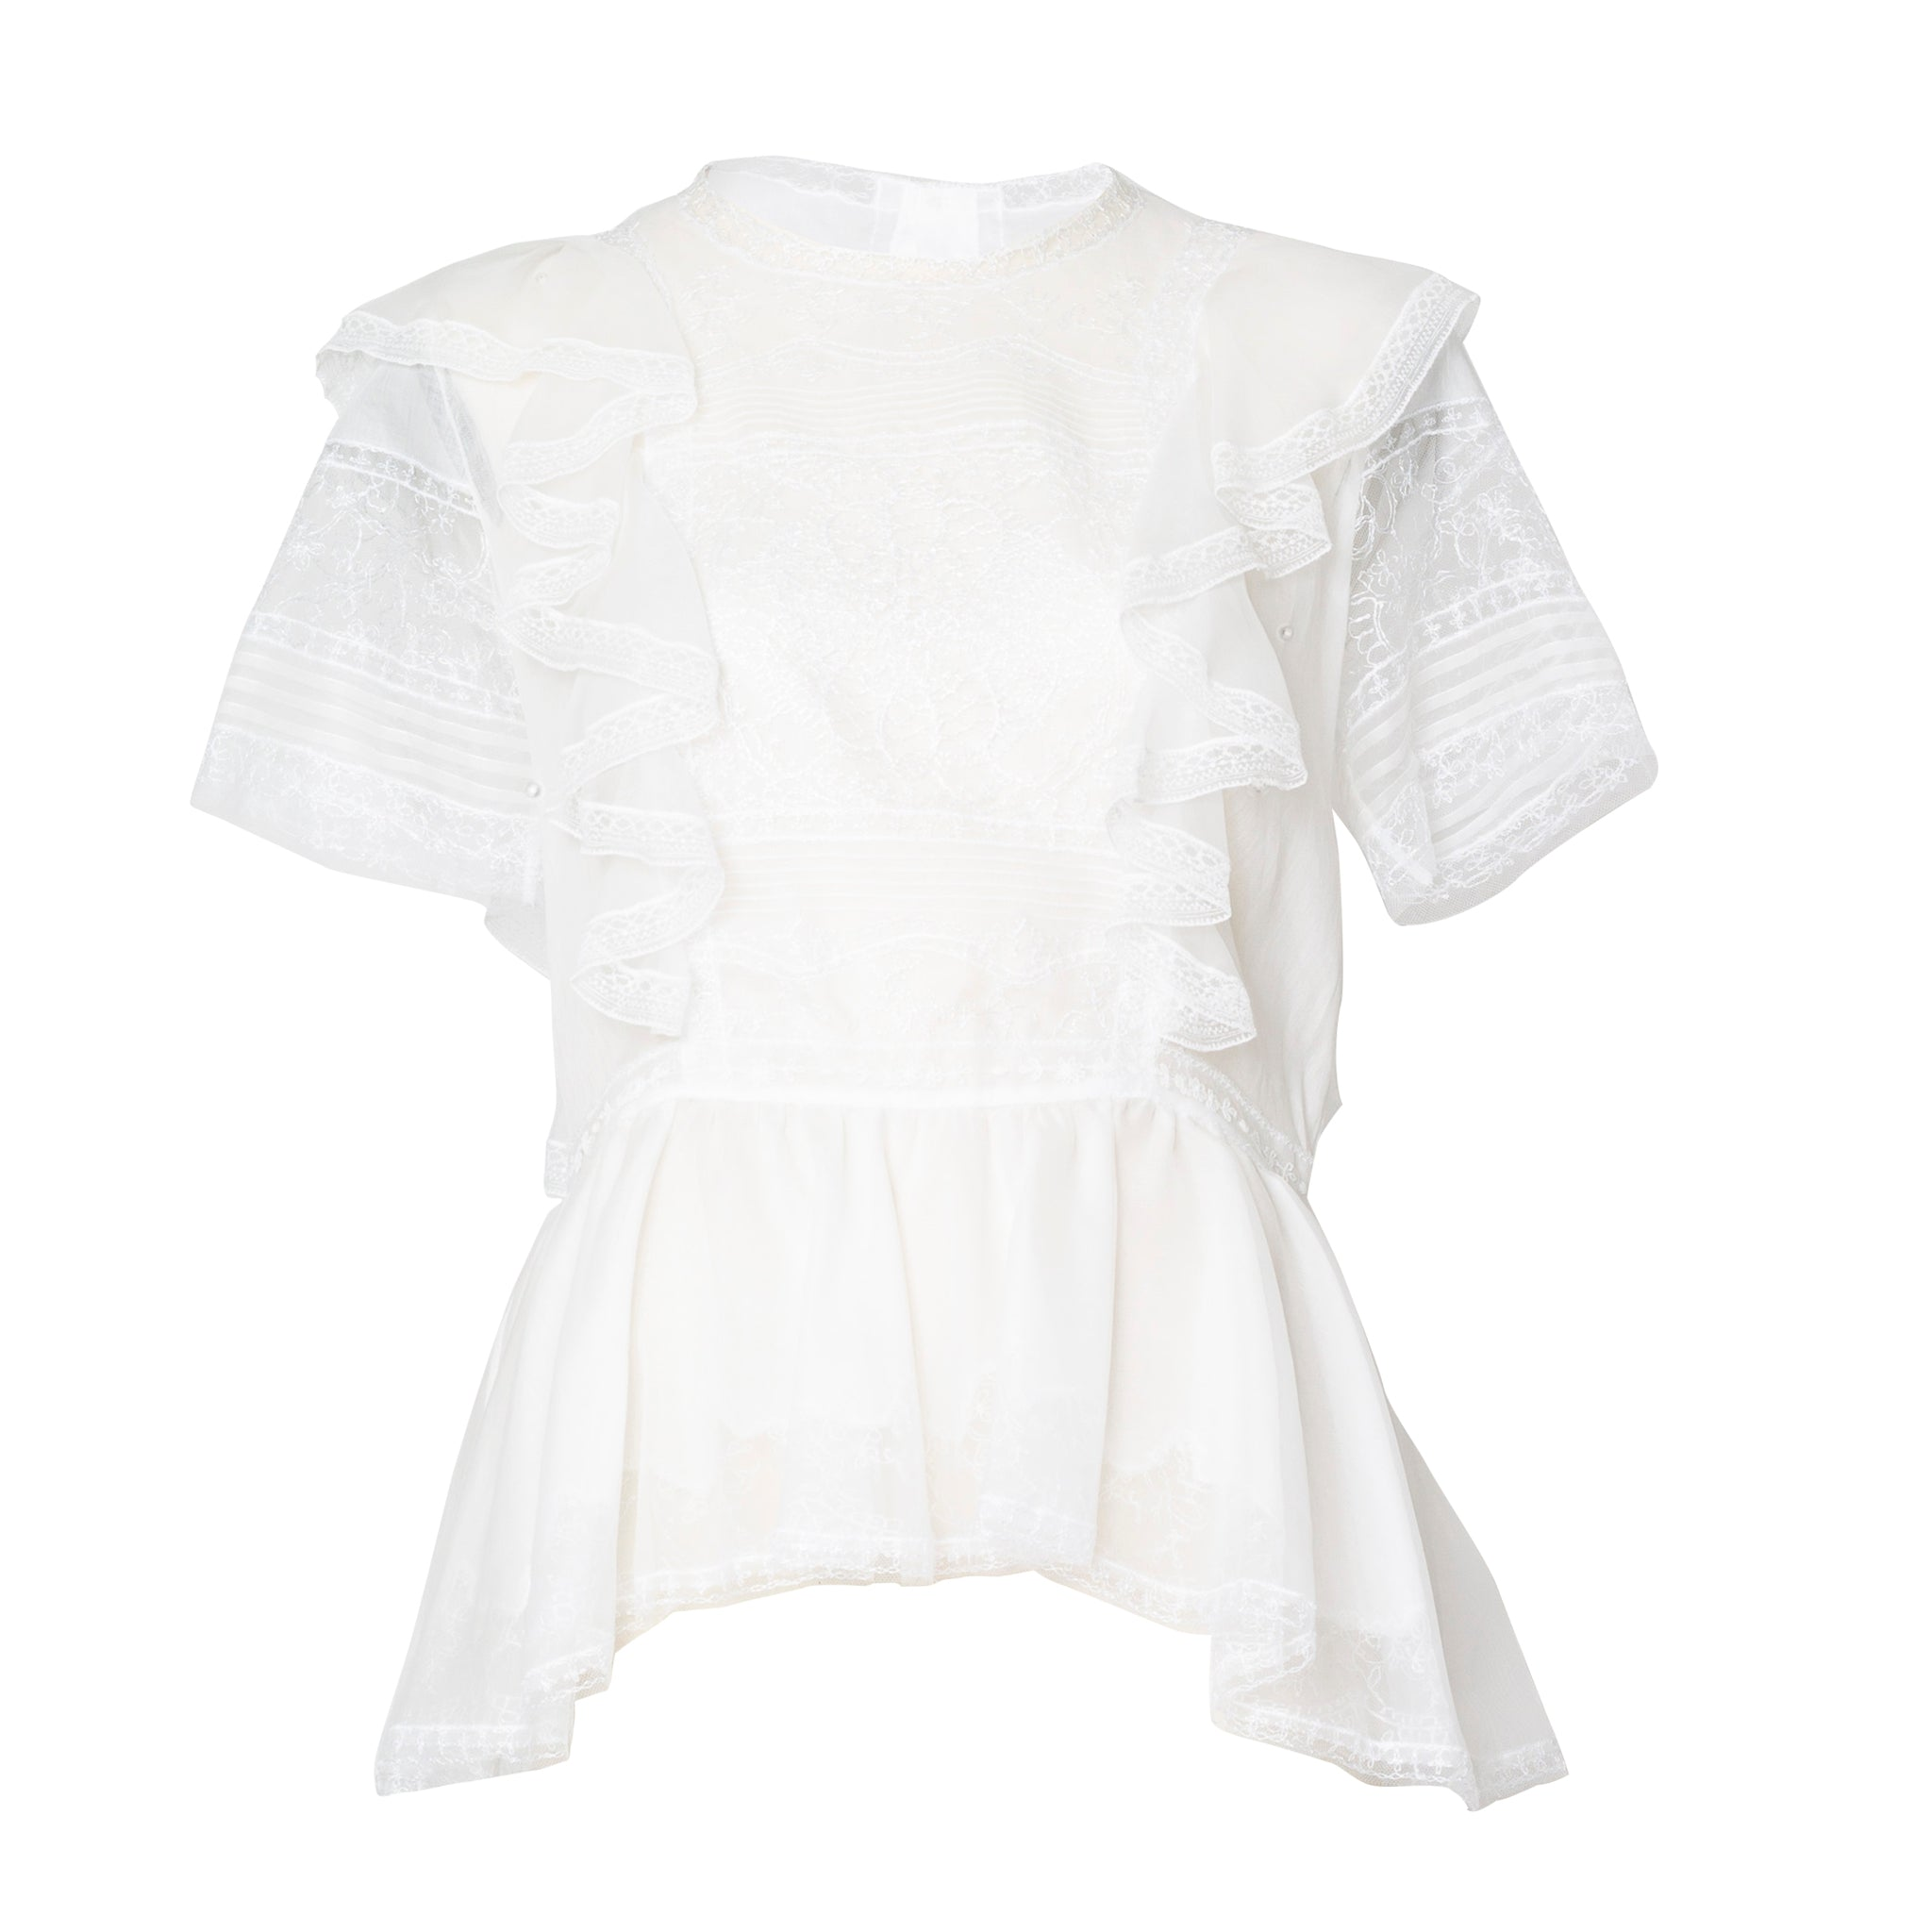 White Short Sleeve Laced Blouse